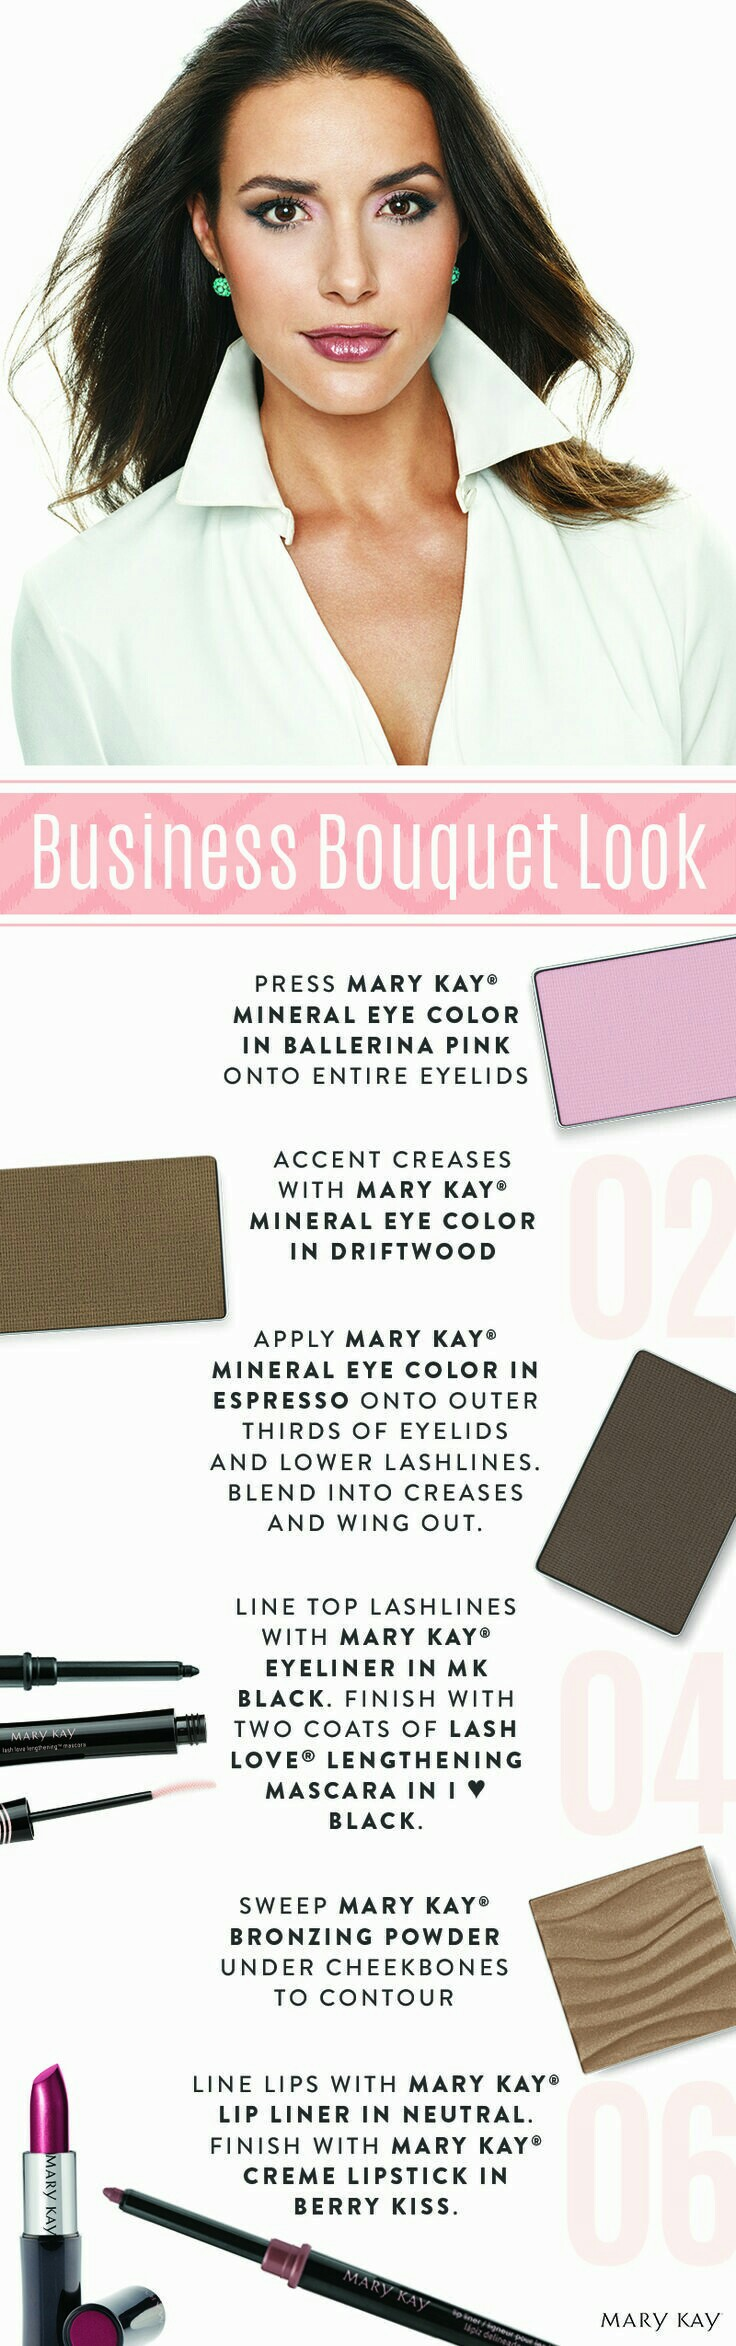 To order or become a consultant www.marykay.com/... Call or text 832-823-1123